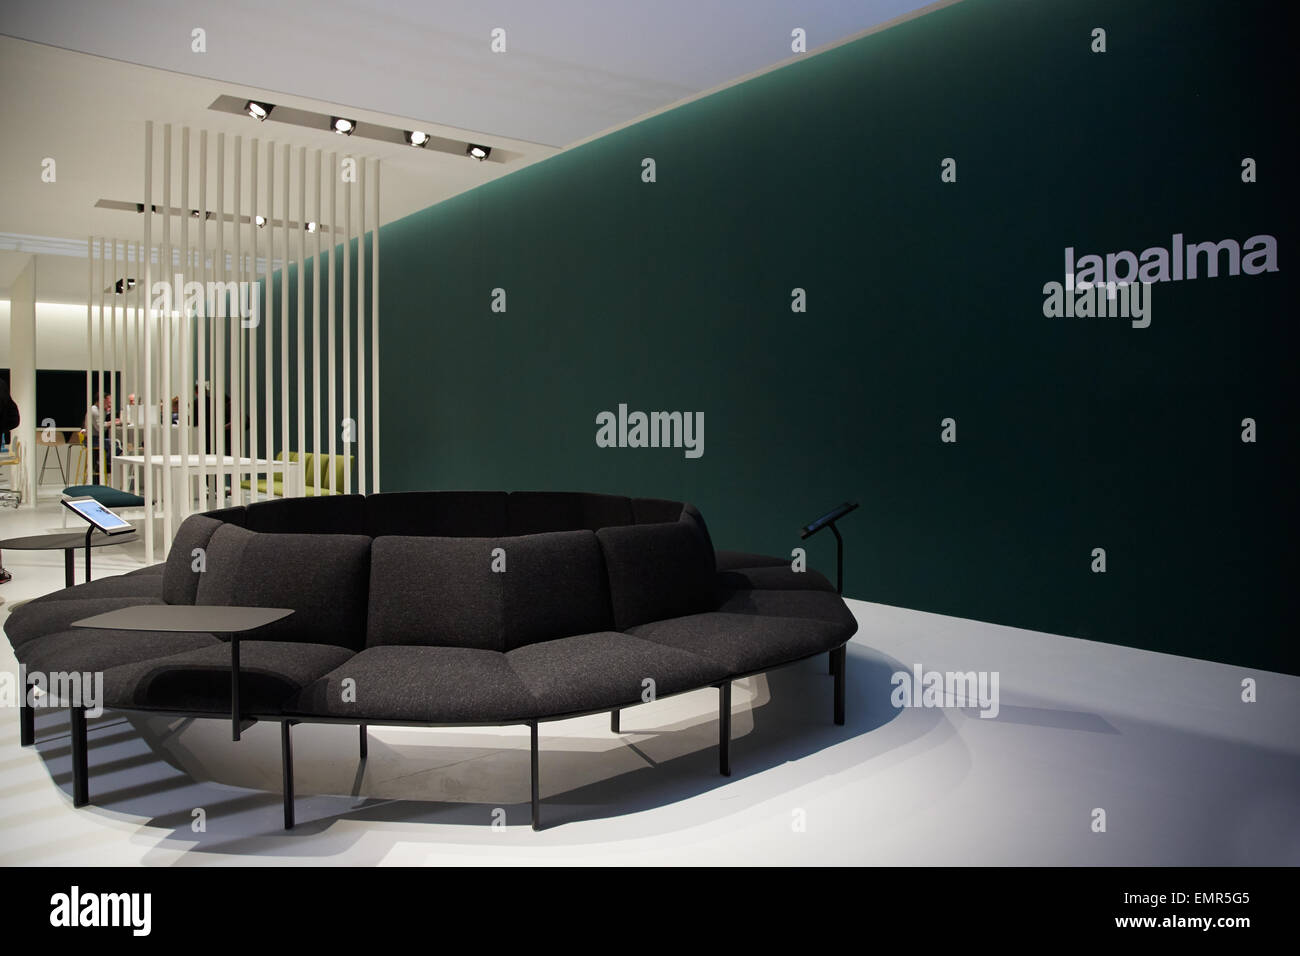 milan italy april 14 milan design week la palma stand at salone stock photo royalty free. Black Bedroom Furniture Sets. Home Design Ideas